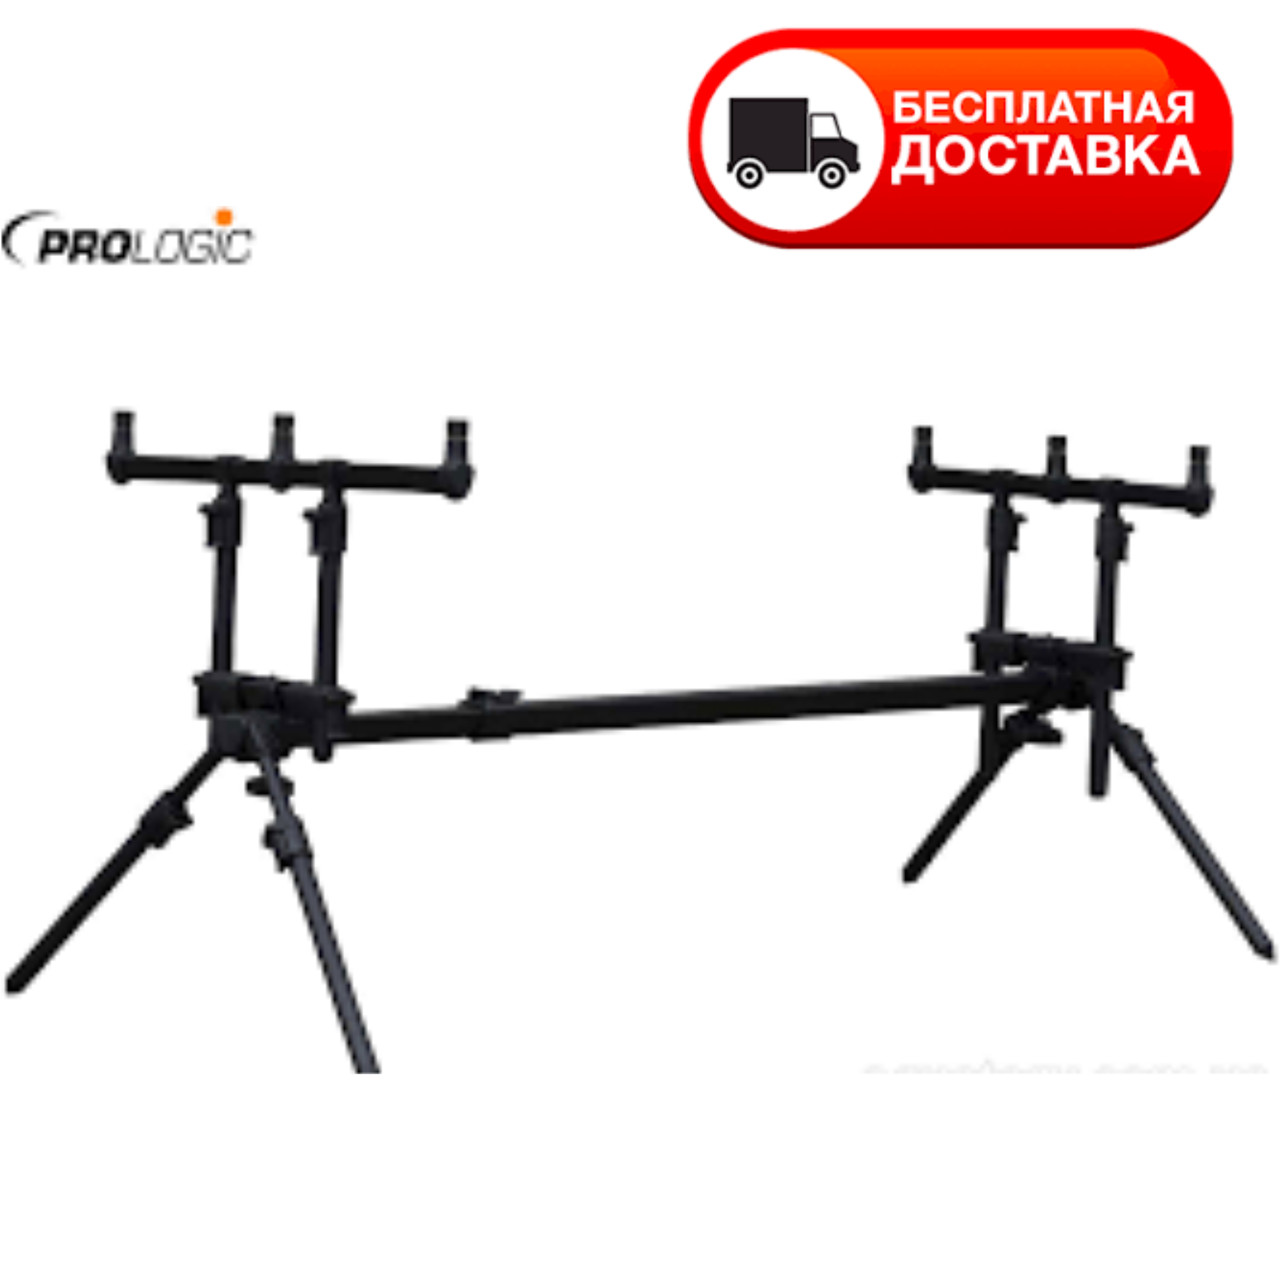 Род-под Prologic Lux Pod 3 Rod